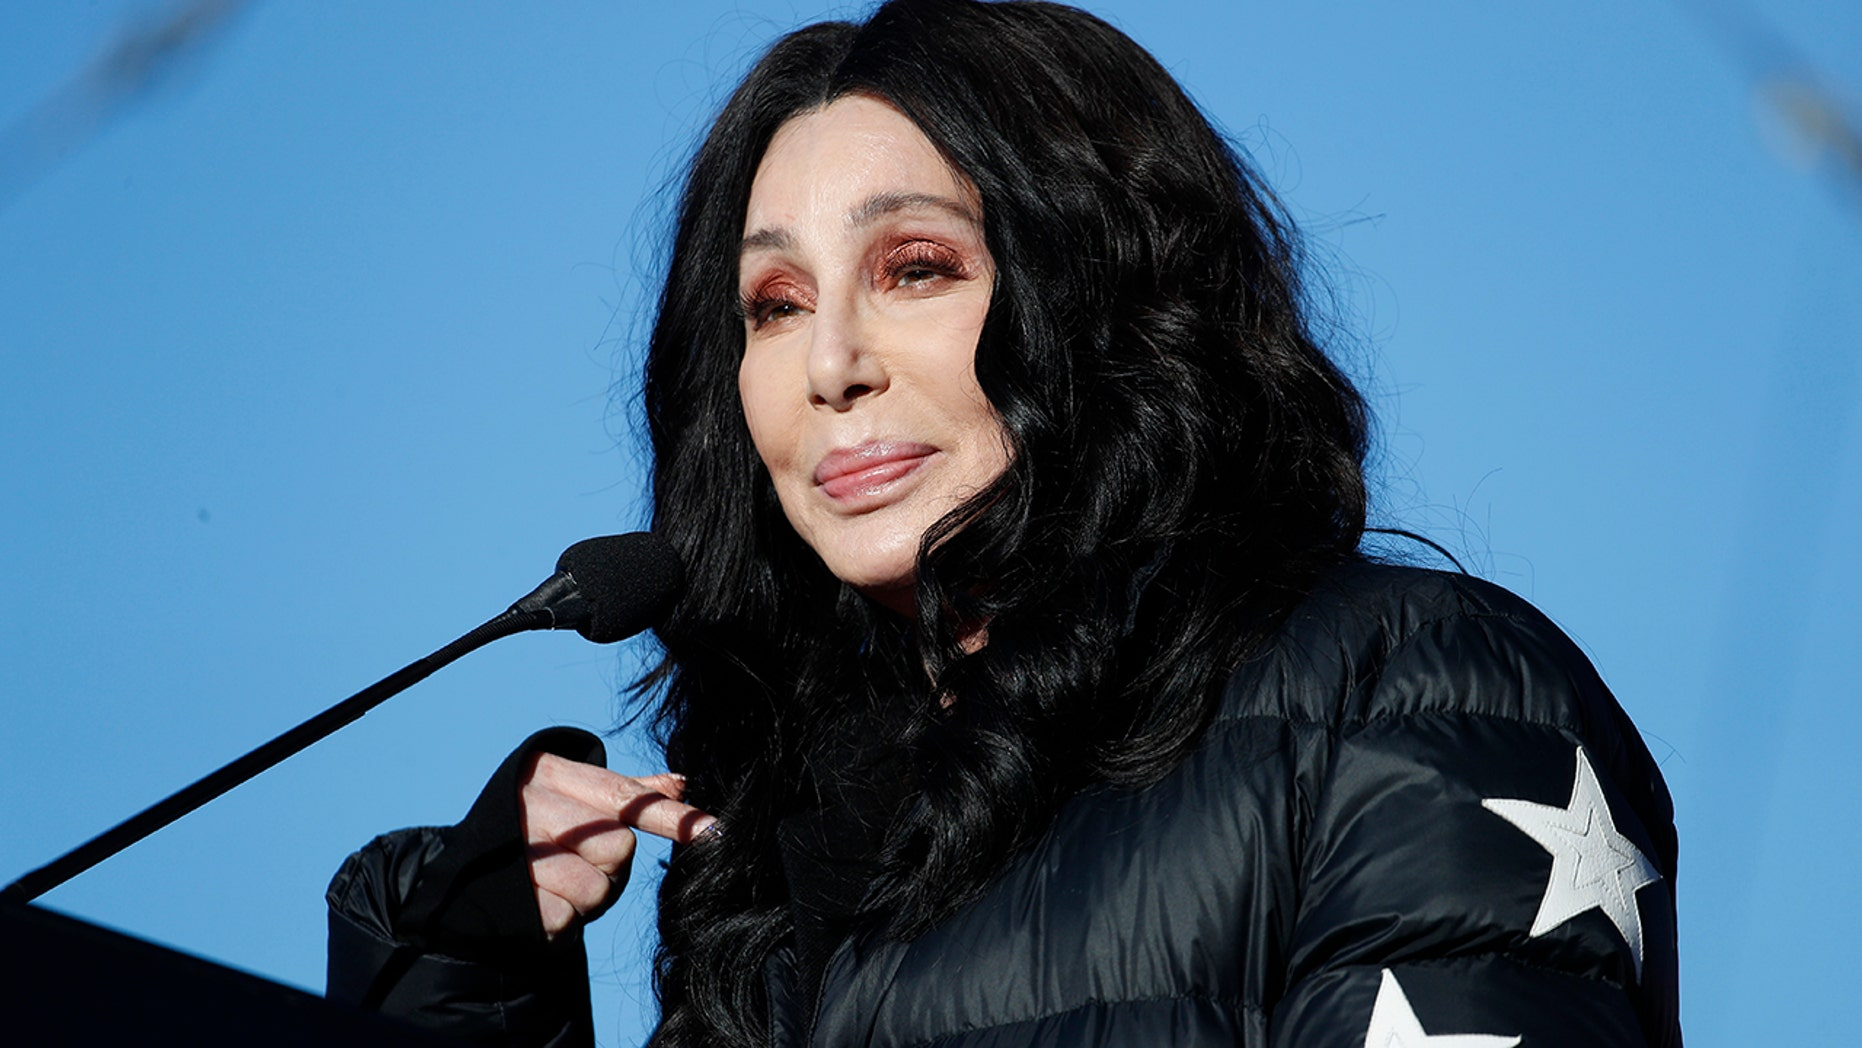 Cher recently revealed that she hoped her Kennedy Center honor would come during a different White House administration.